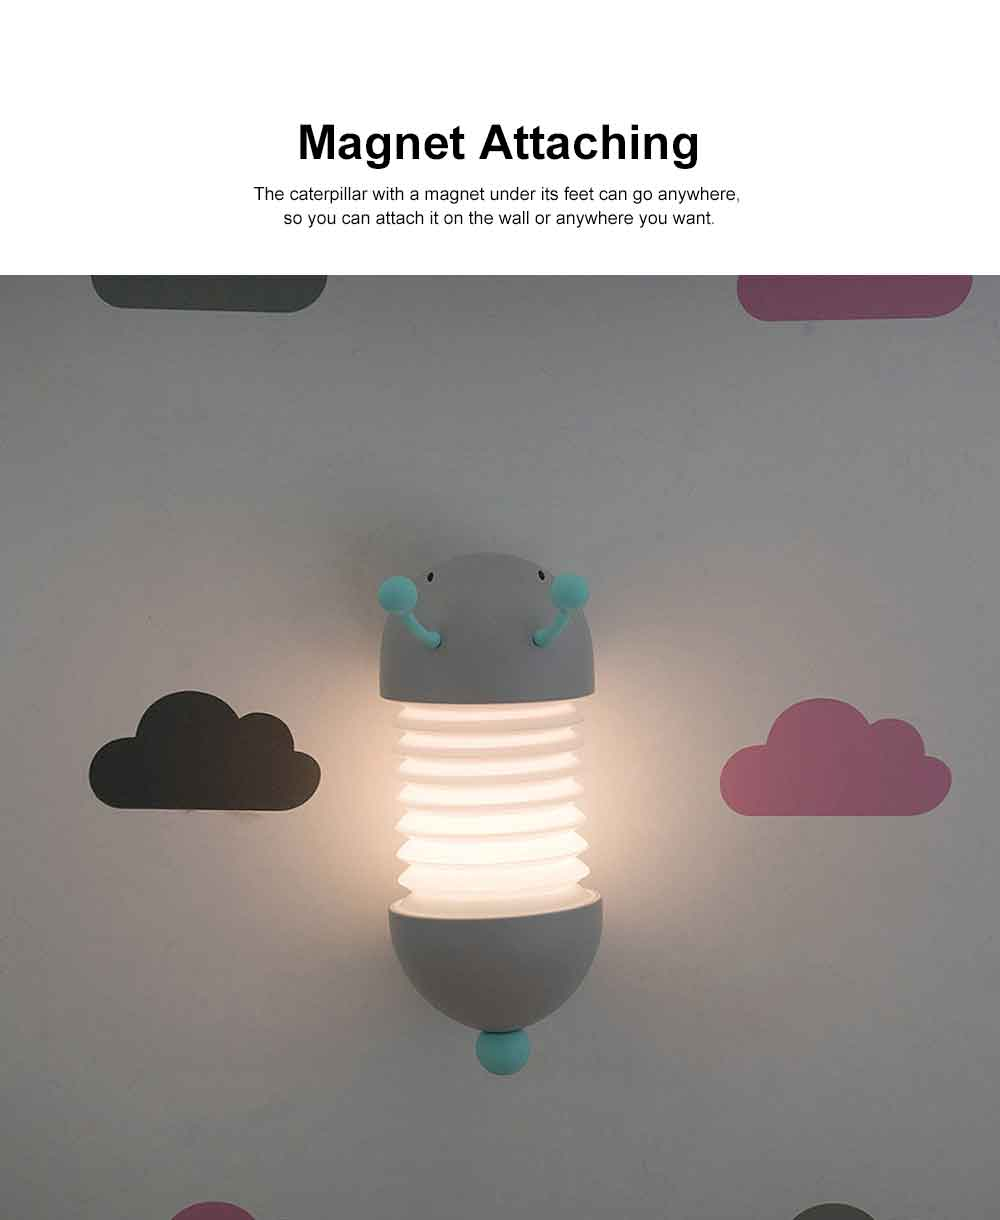 Creative USB LED Rechargeable Wall Lamp with Soft Light, Caterpillar Night Light for Children to Sleep Restful. 2